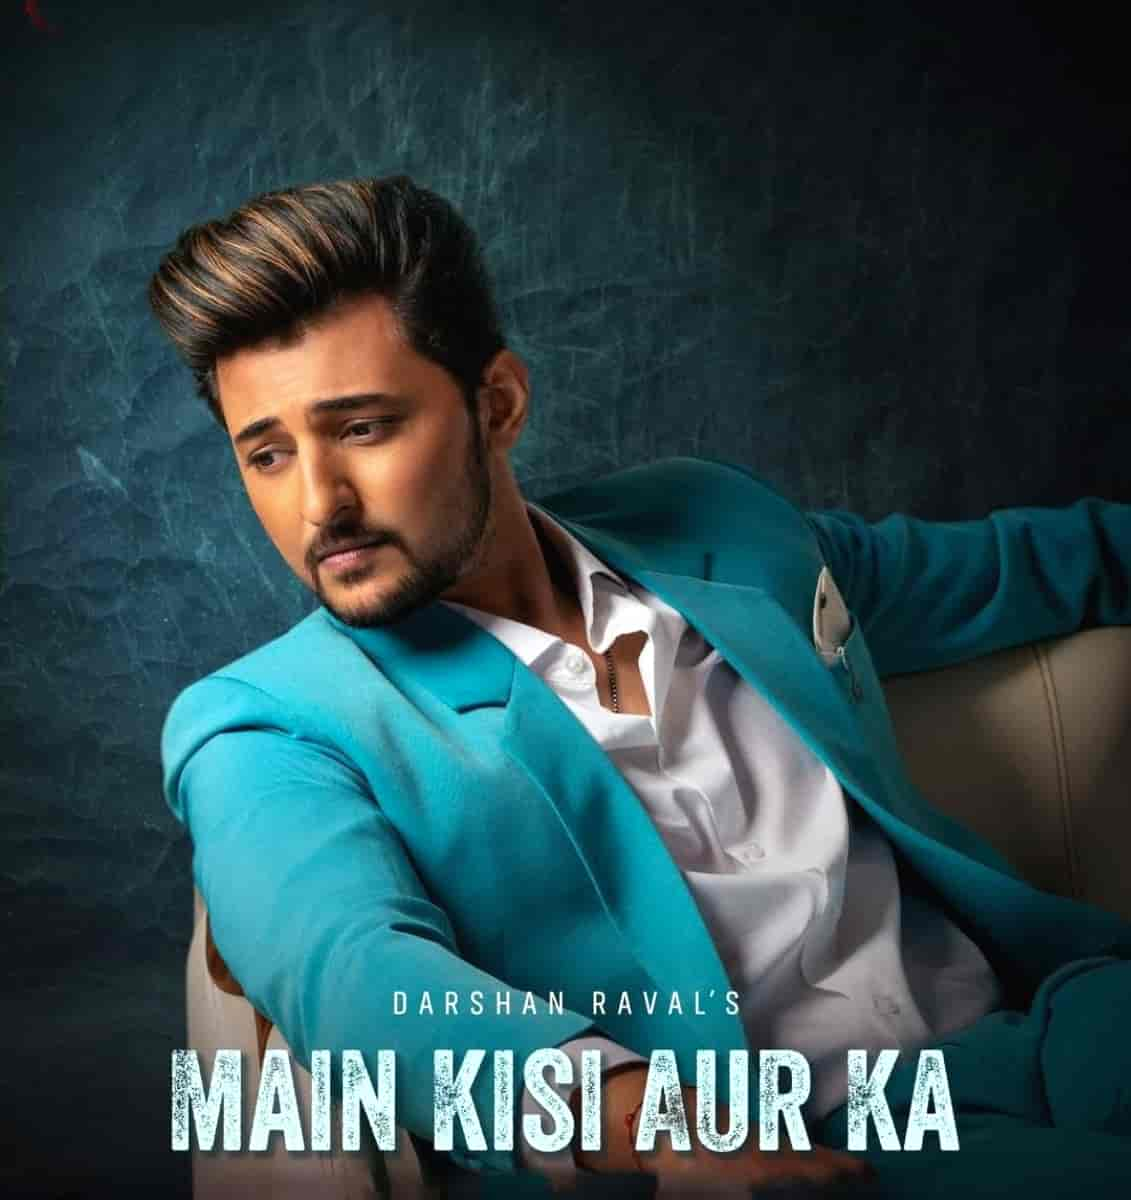 MAIN KISI AUR KA LYRICS - Darshan Raval | Judaiyaan